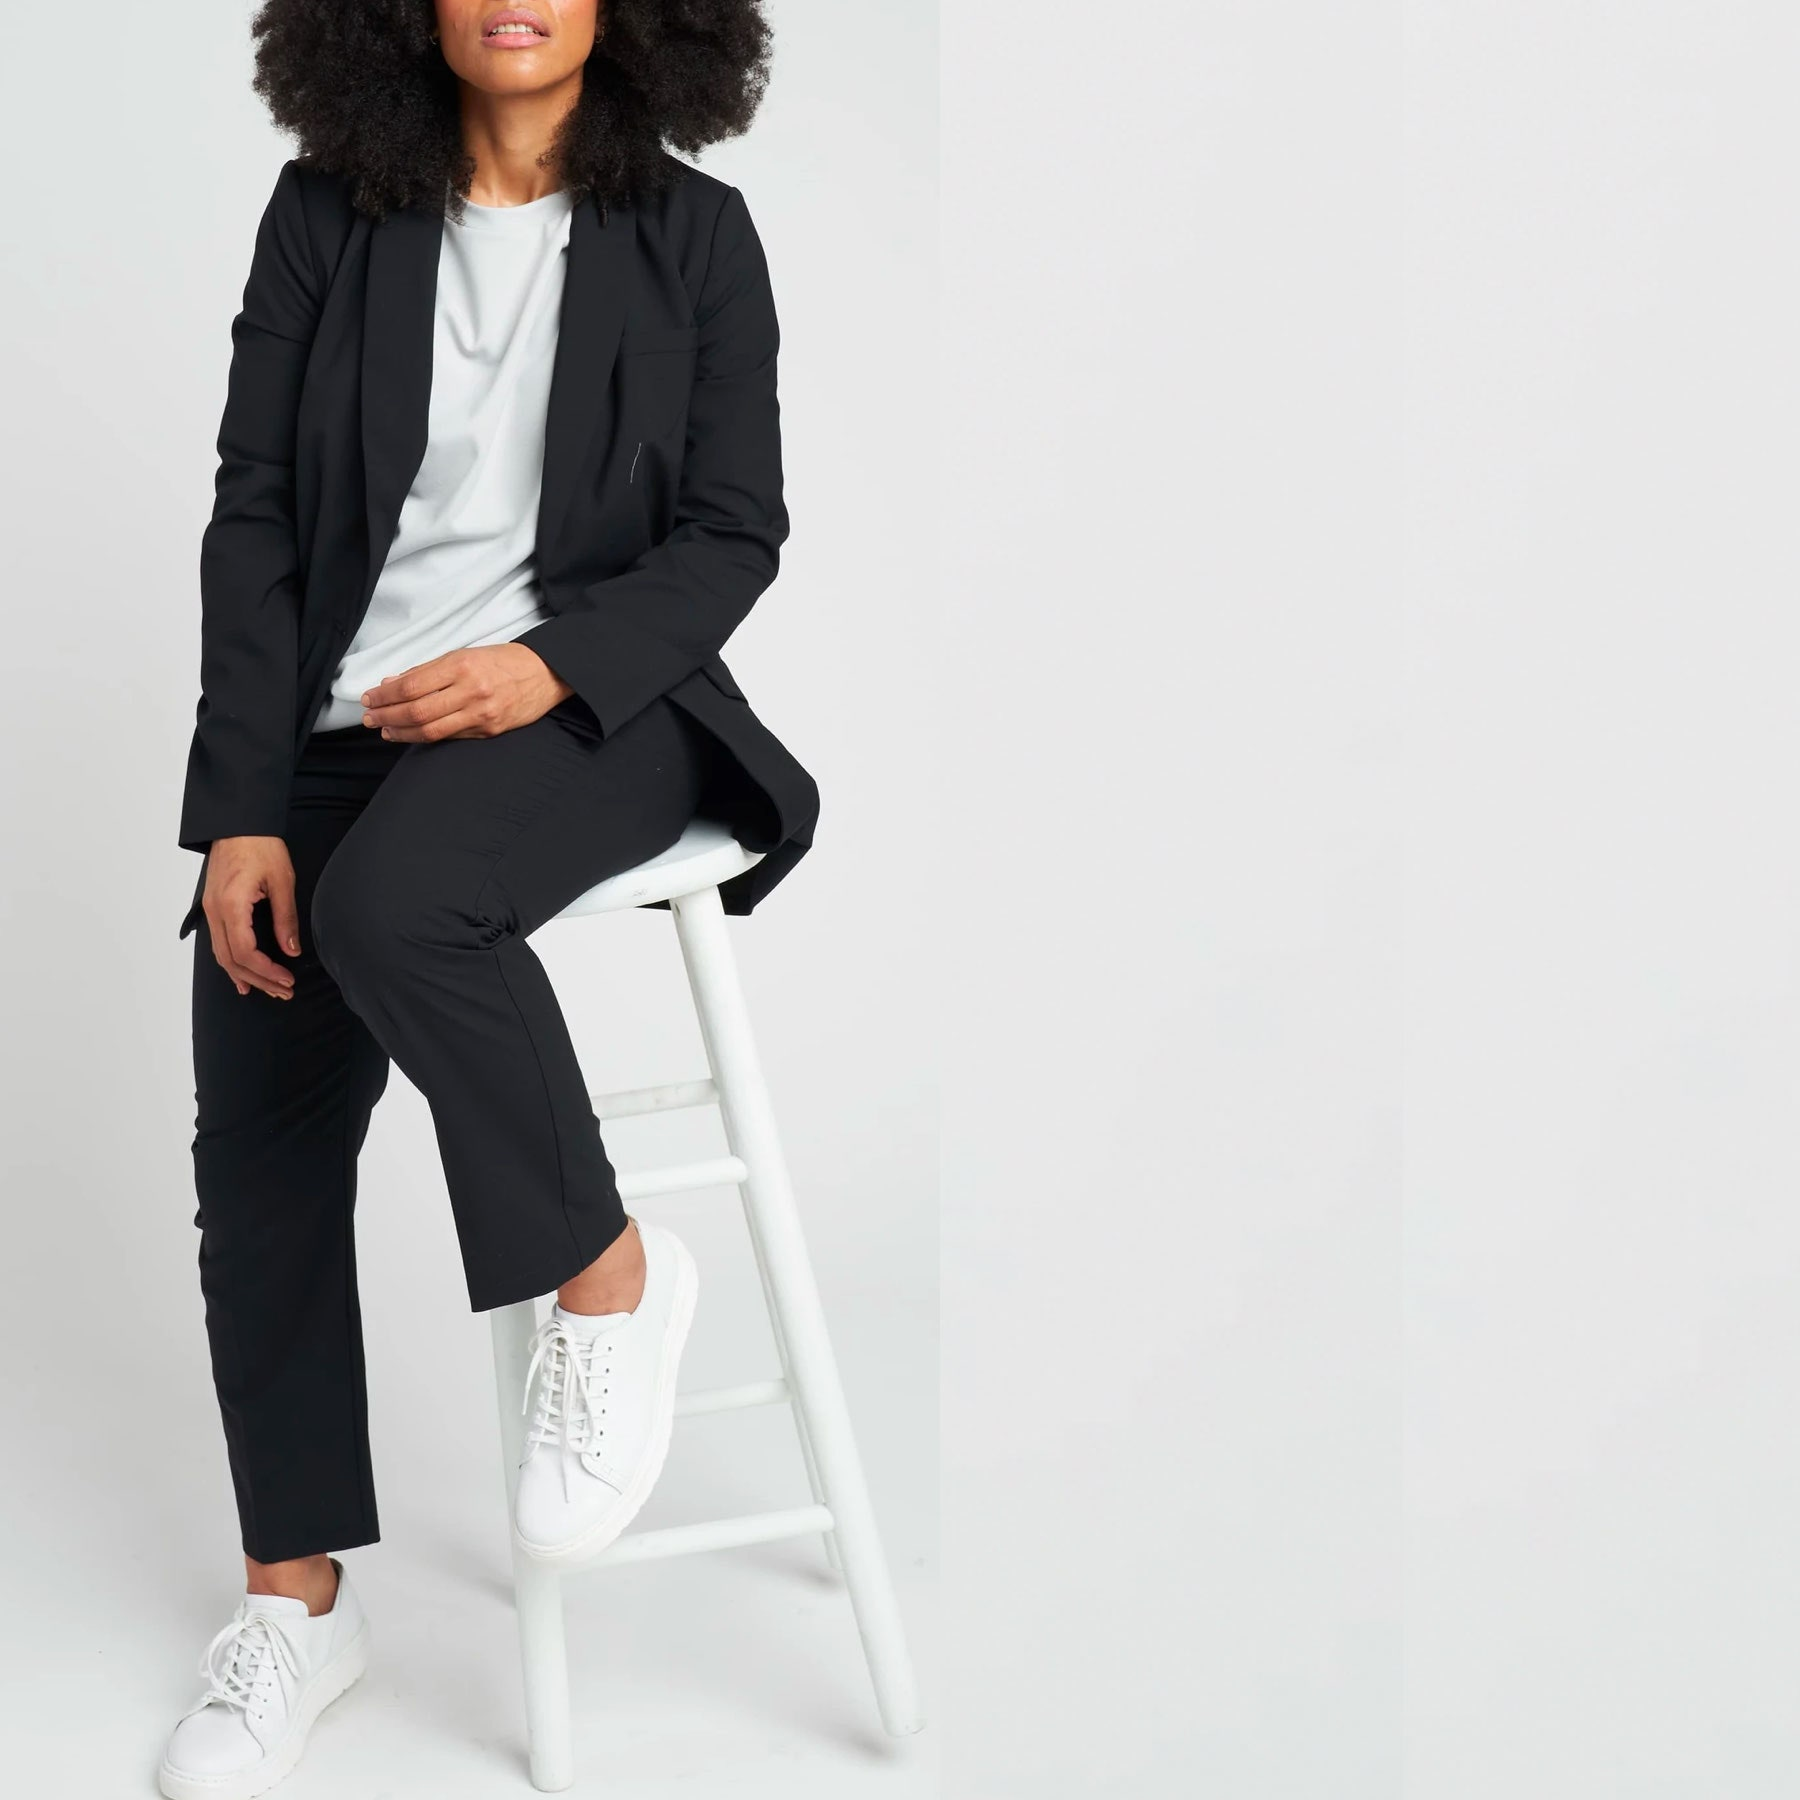 model wearing blazer and trousers